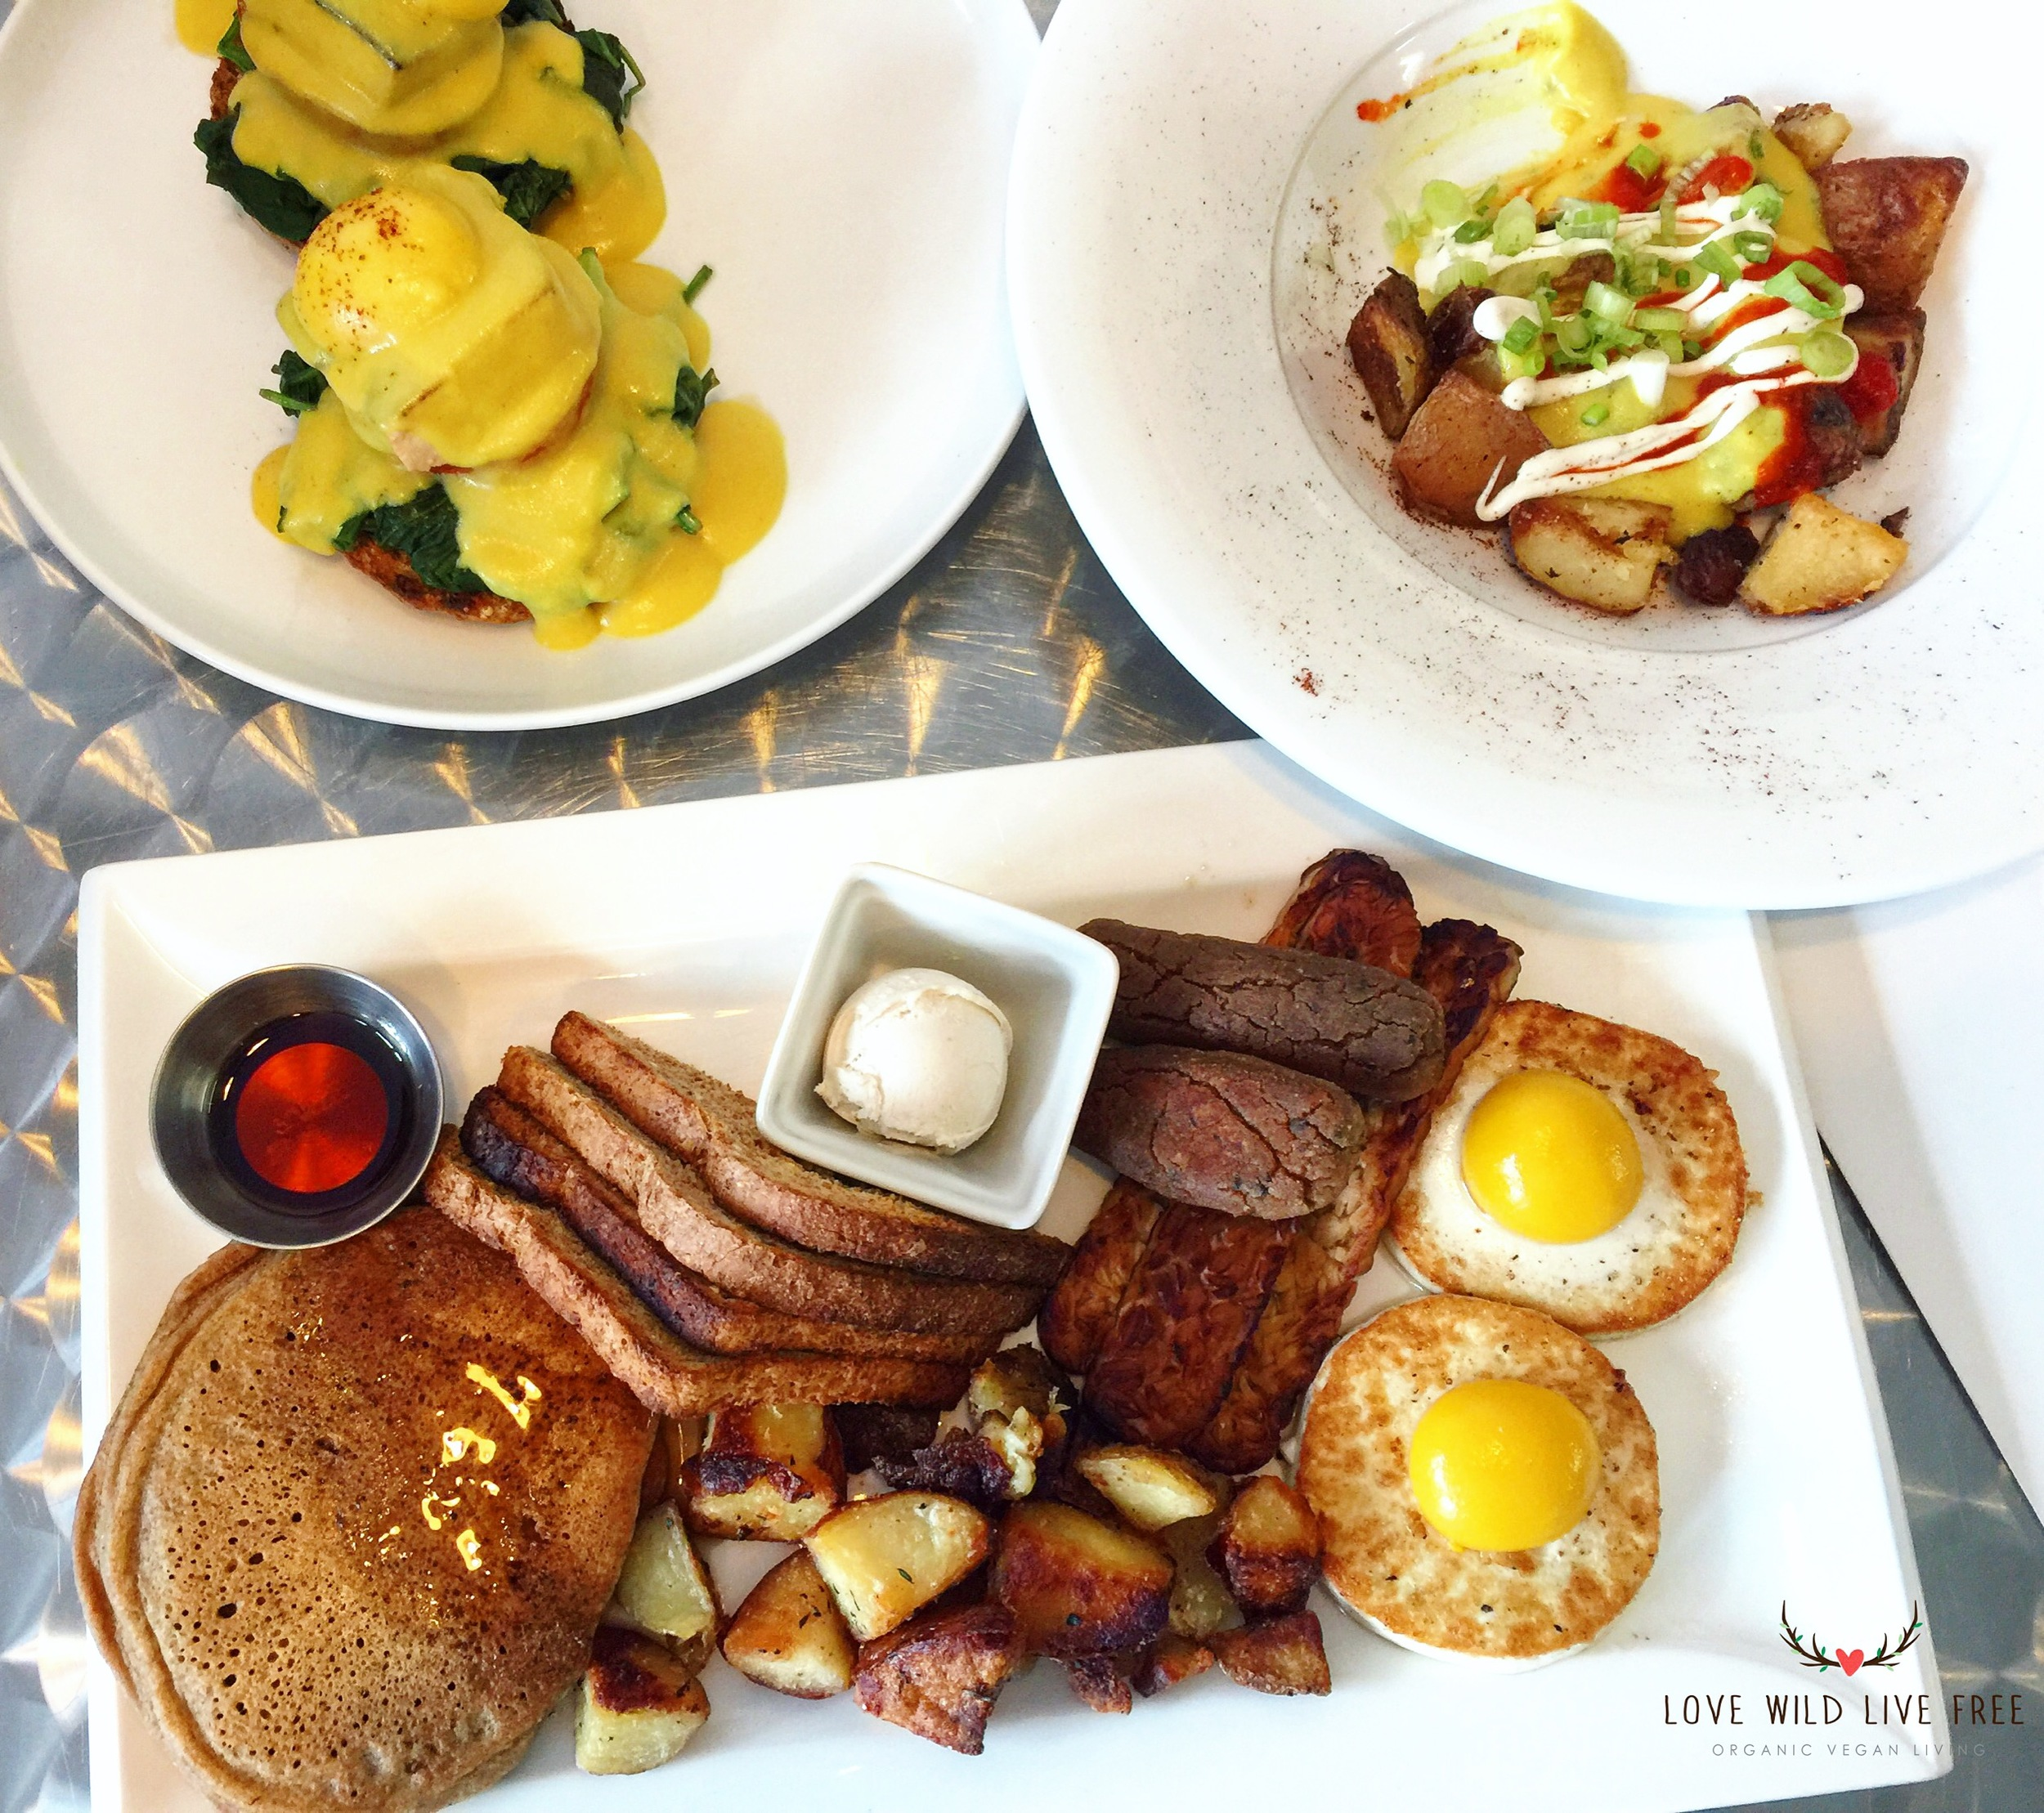 One of my favourite spots in Toronto for Vegan Brunch is  Doug McNish's Public Kitchen . Everything on the menu is plant-based and made with organic, local ingredients. Pictured above:Public Kitchen Slam (bottom centre) with sunny side up vegan eggs *mind blowing*, fluffy red fife pancakes,tempeh bacon, black eyed pea breakfast sausages + all of the breakfast fixings;Vegan Benedict (top left) on sprouted grain english muffins, seared smoky sprouted tofu, runny soft poached vegan egg yolk and hollandaise sauce;Loaded Breakfast Potatoes (top right).